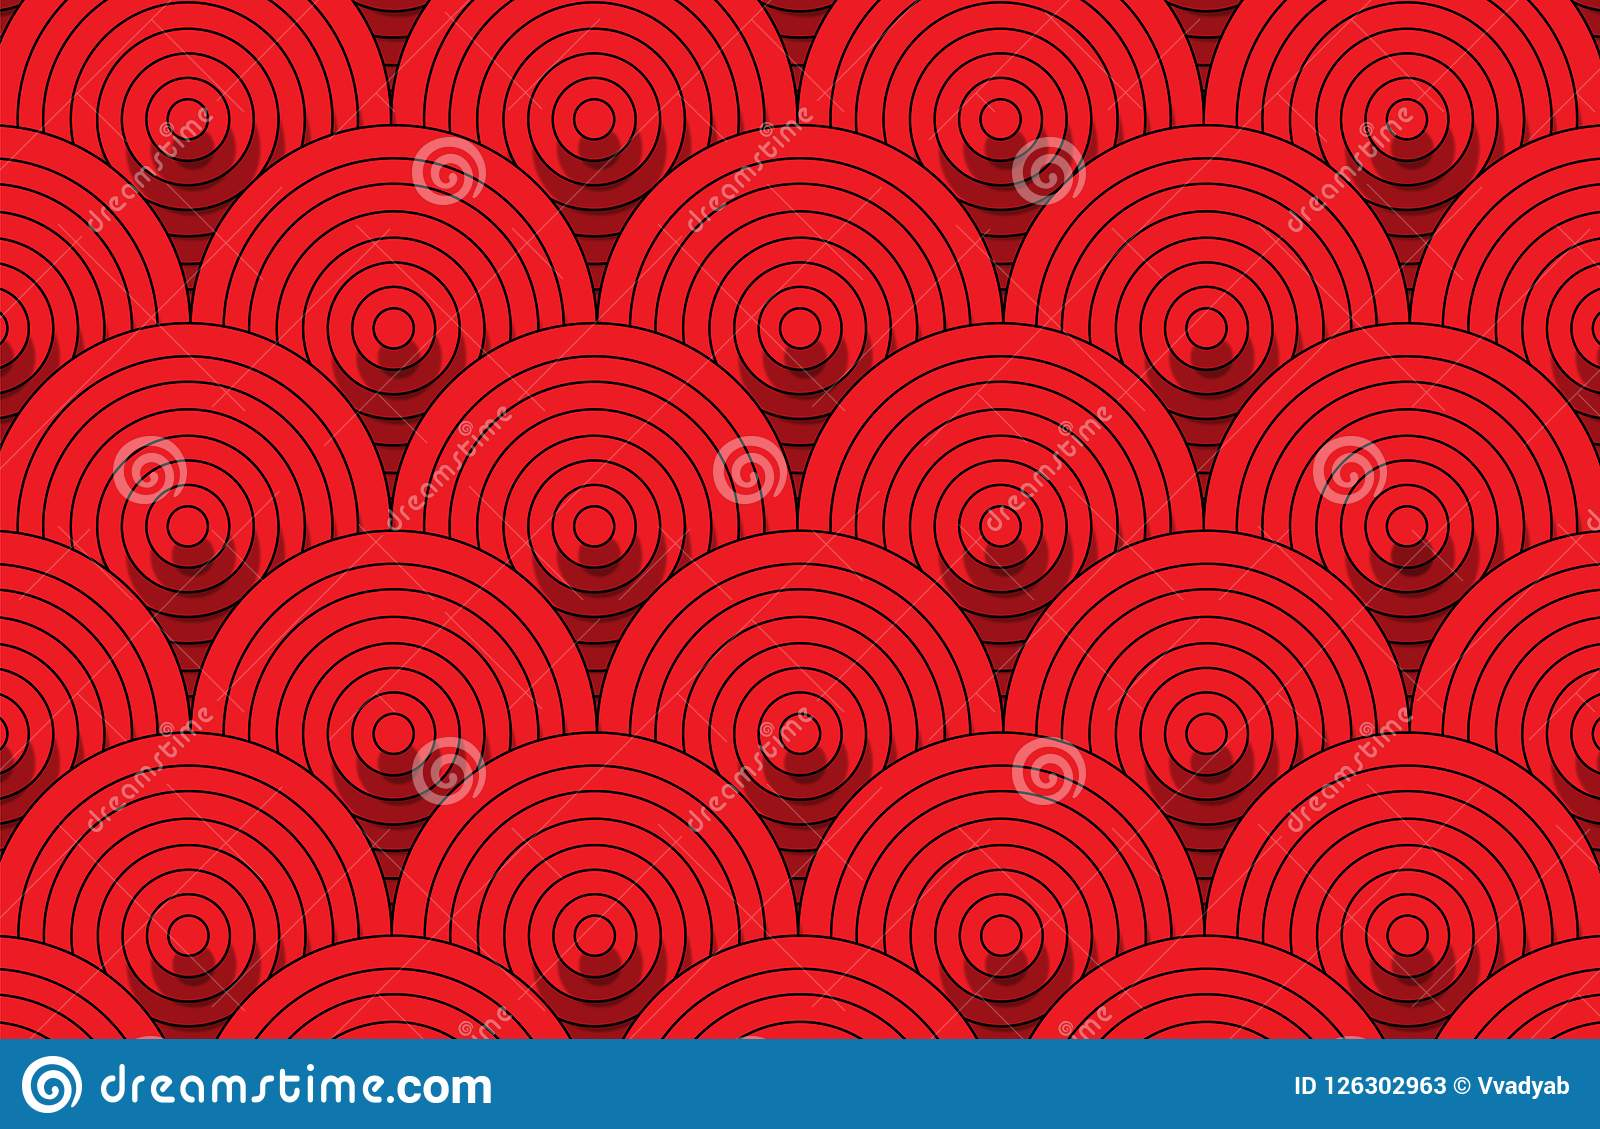 Download Abstract Red Round Pattern Wallpaper Background Stock Image